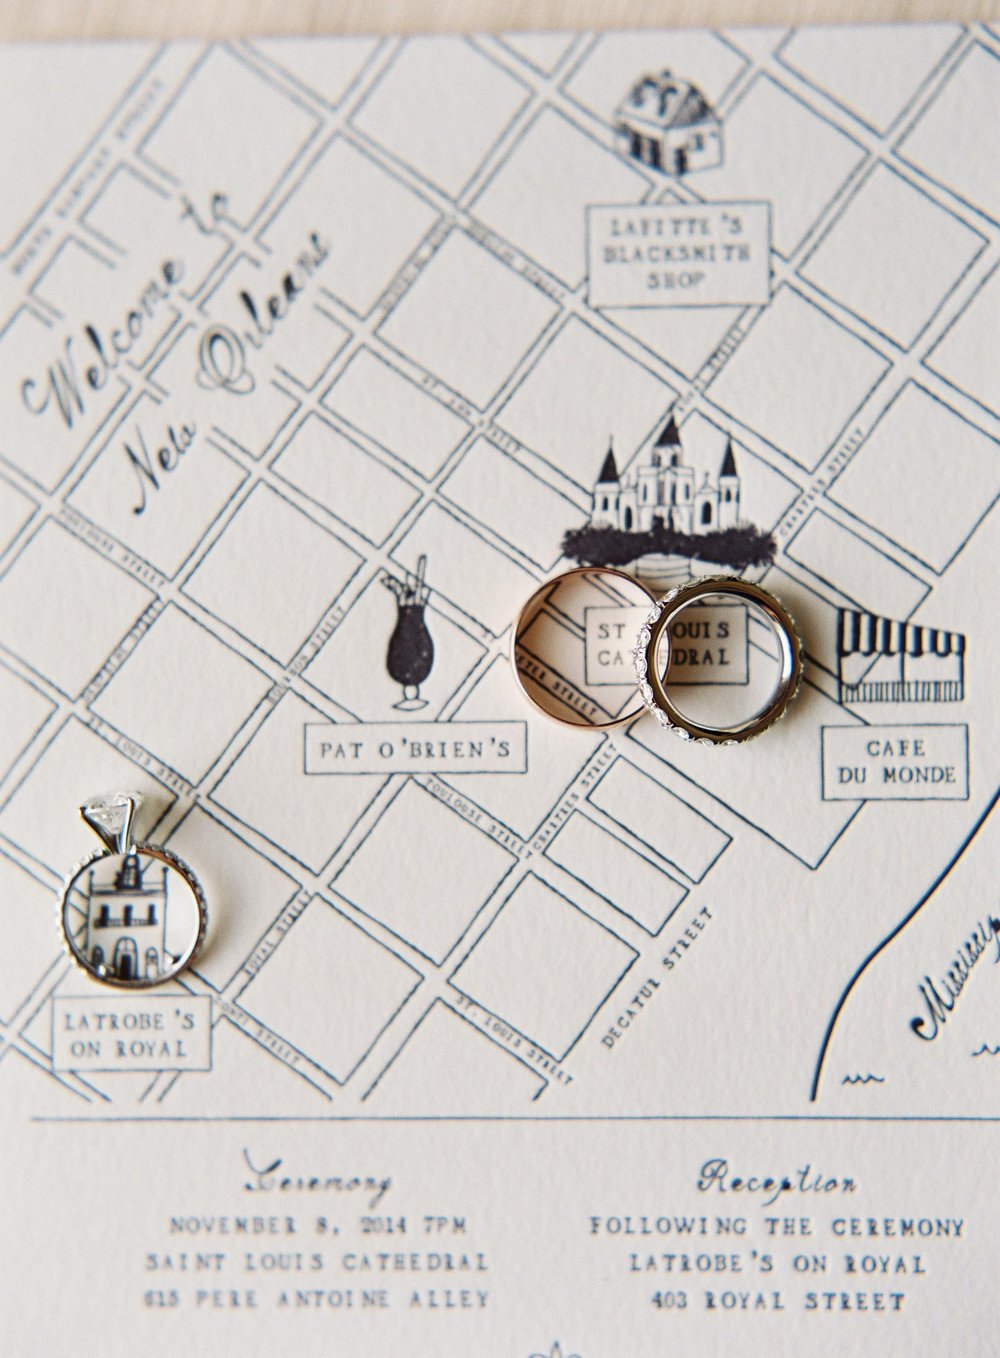 Wedding Planning Tips | Sapphire Events | Wedding Planner | Rylee Hitchner Photography | How to Use Pinterest | Letterpress Ideas | New Orleans Map | French Quarter Wedding